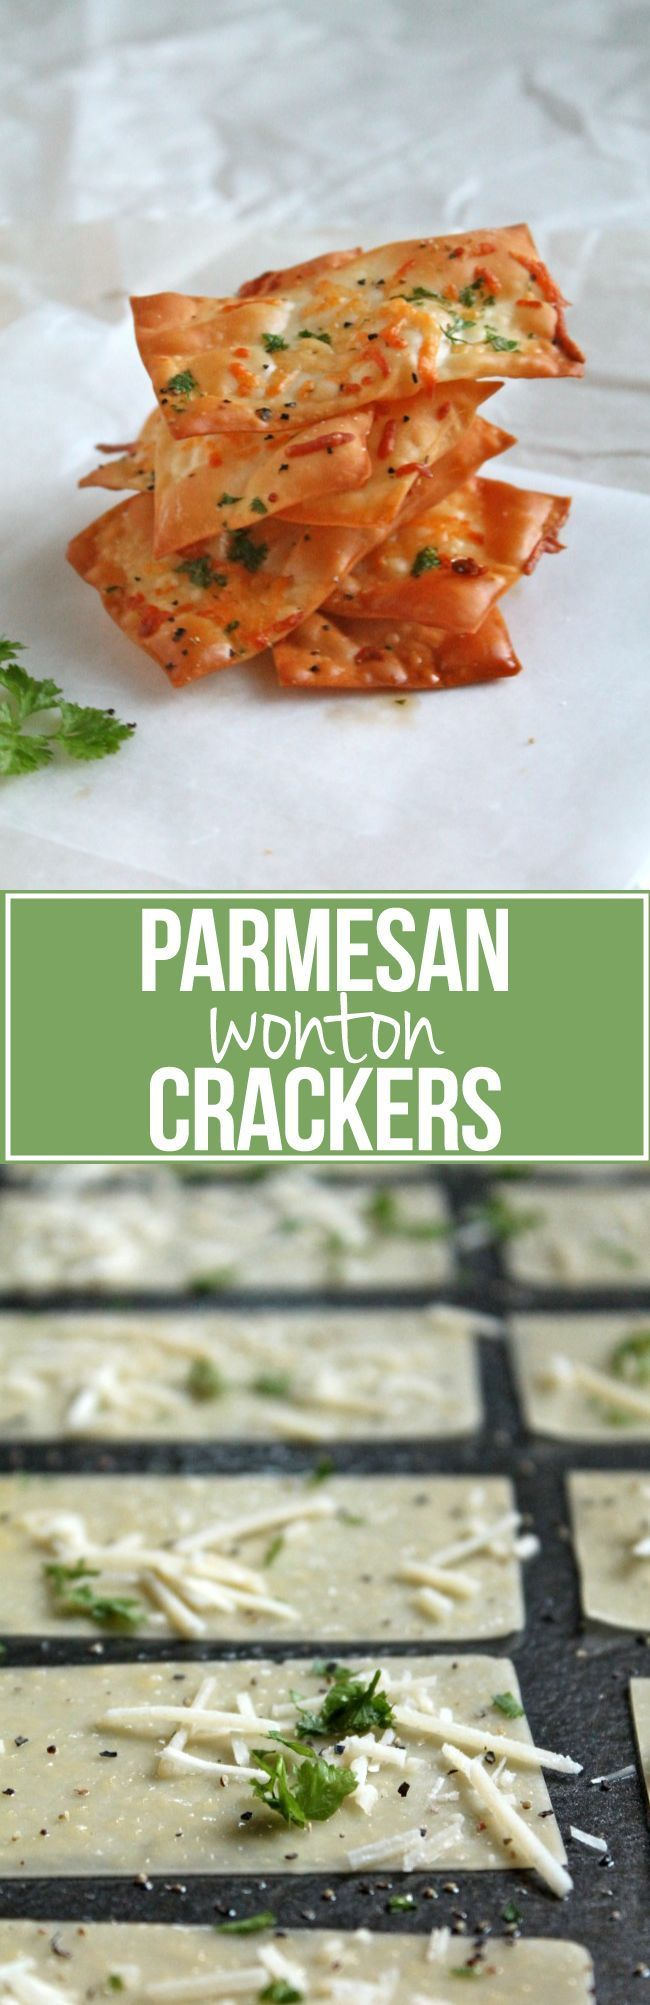 Parmesan Wonton Crackers - easy and healthy alternative to potato chips!